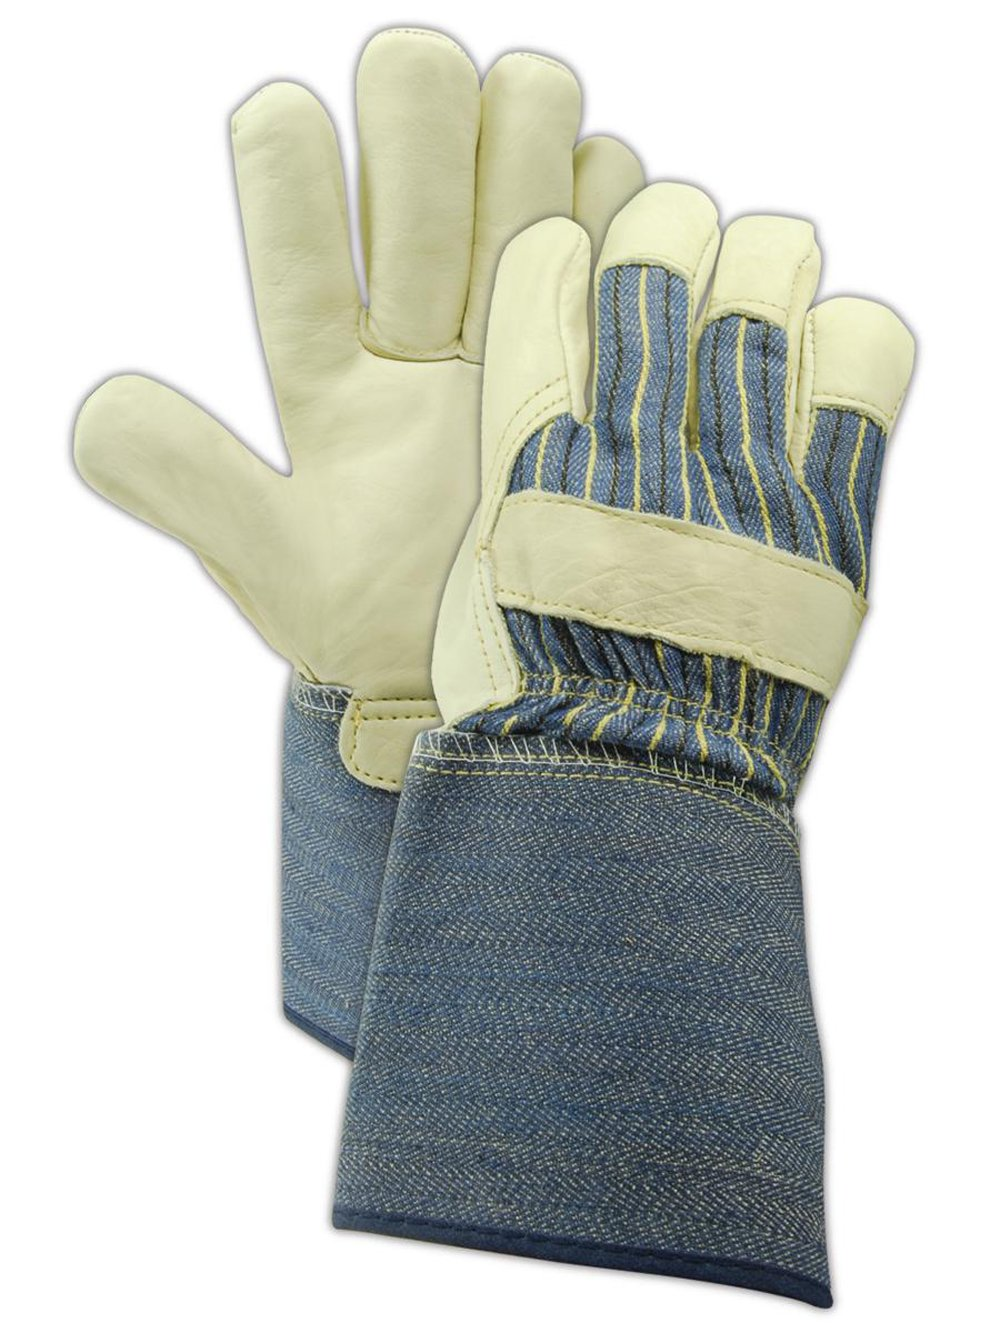 MAGID DuraMaster TG525E Leather Glove X-Large 1 Max 51% OFF Cuff Gauntlet Max 56% OFF